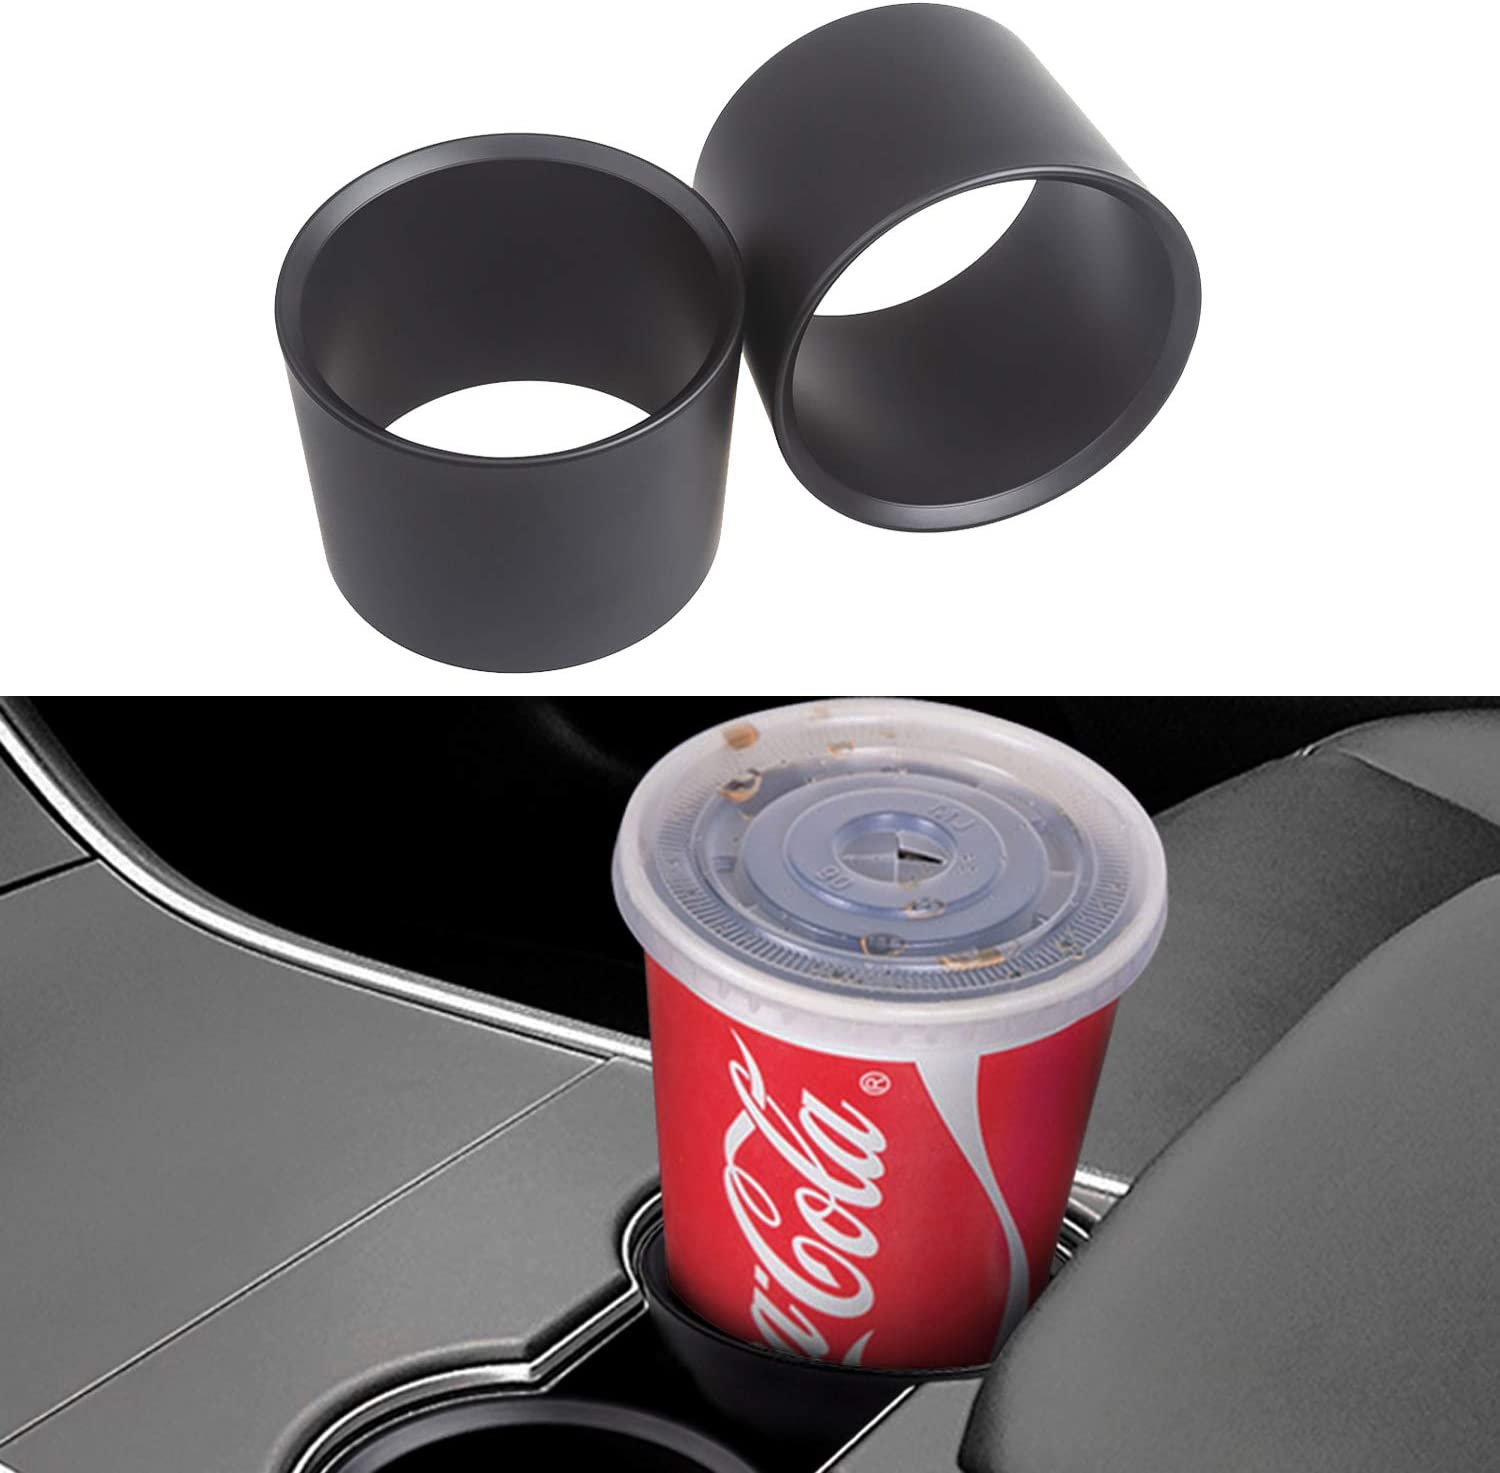 TAPTES Cup Holder Inserts Fit Most of Bottles Car Accessories for Tesla Model 3 Model Y/Tacoma/F-150 Center Console Cup Holders-2pcs